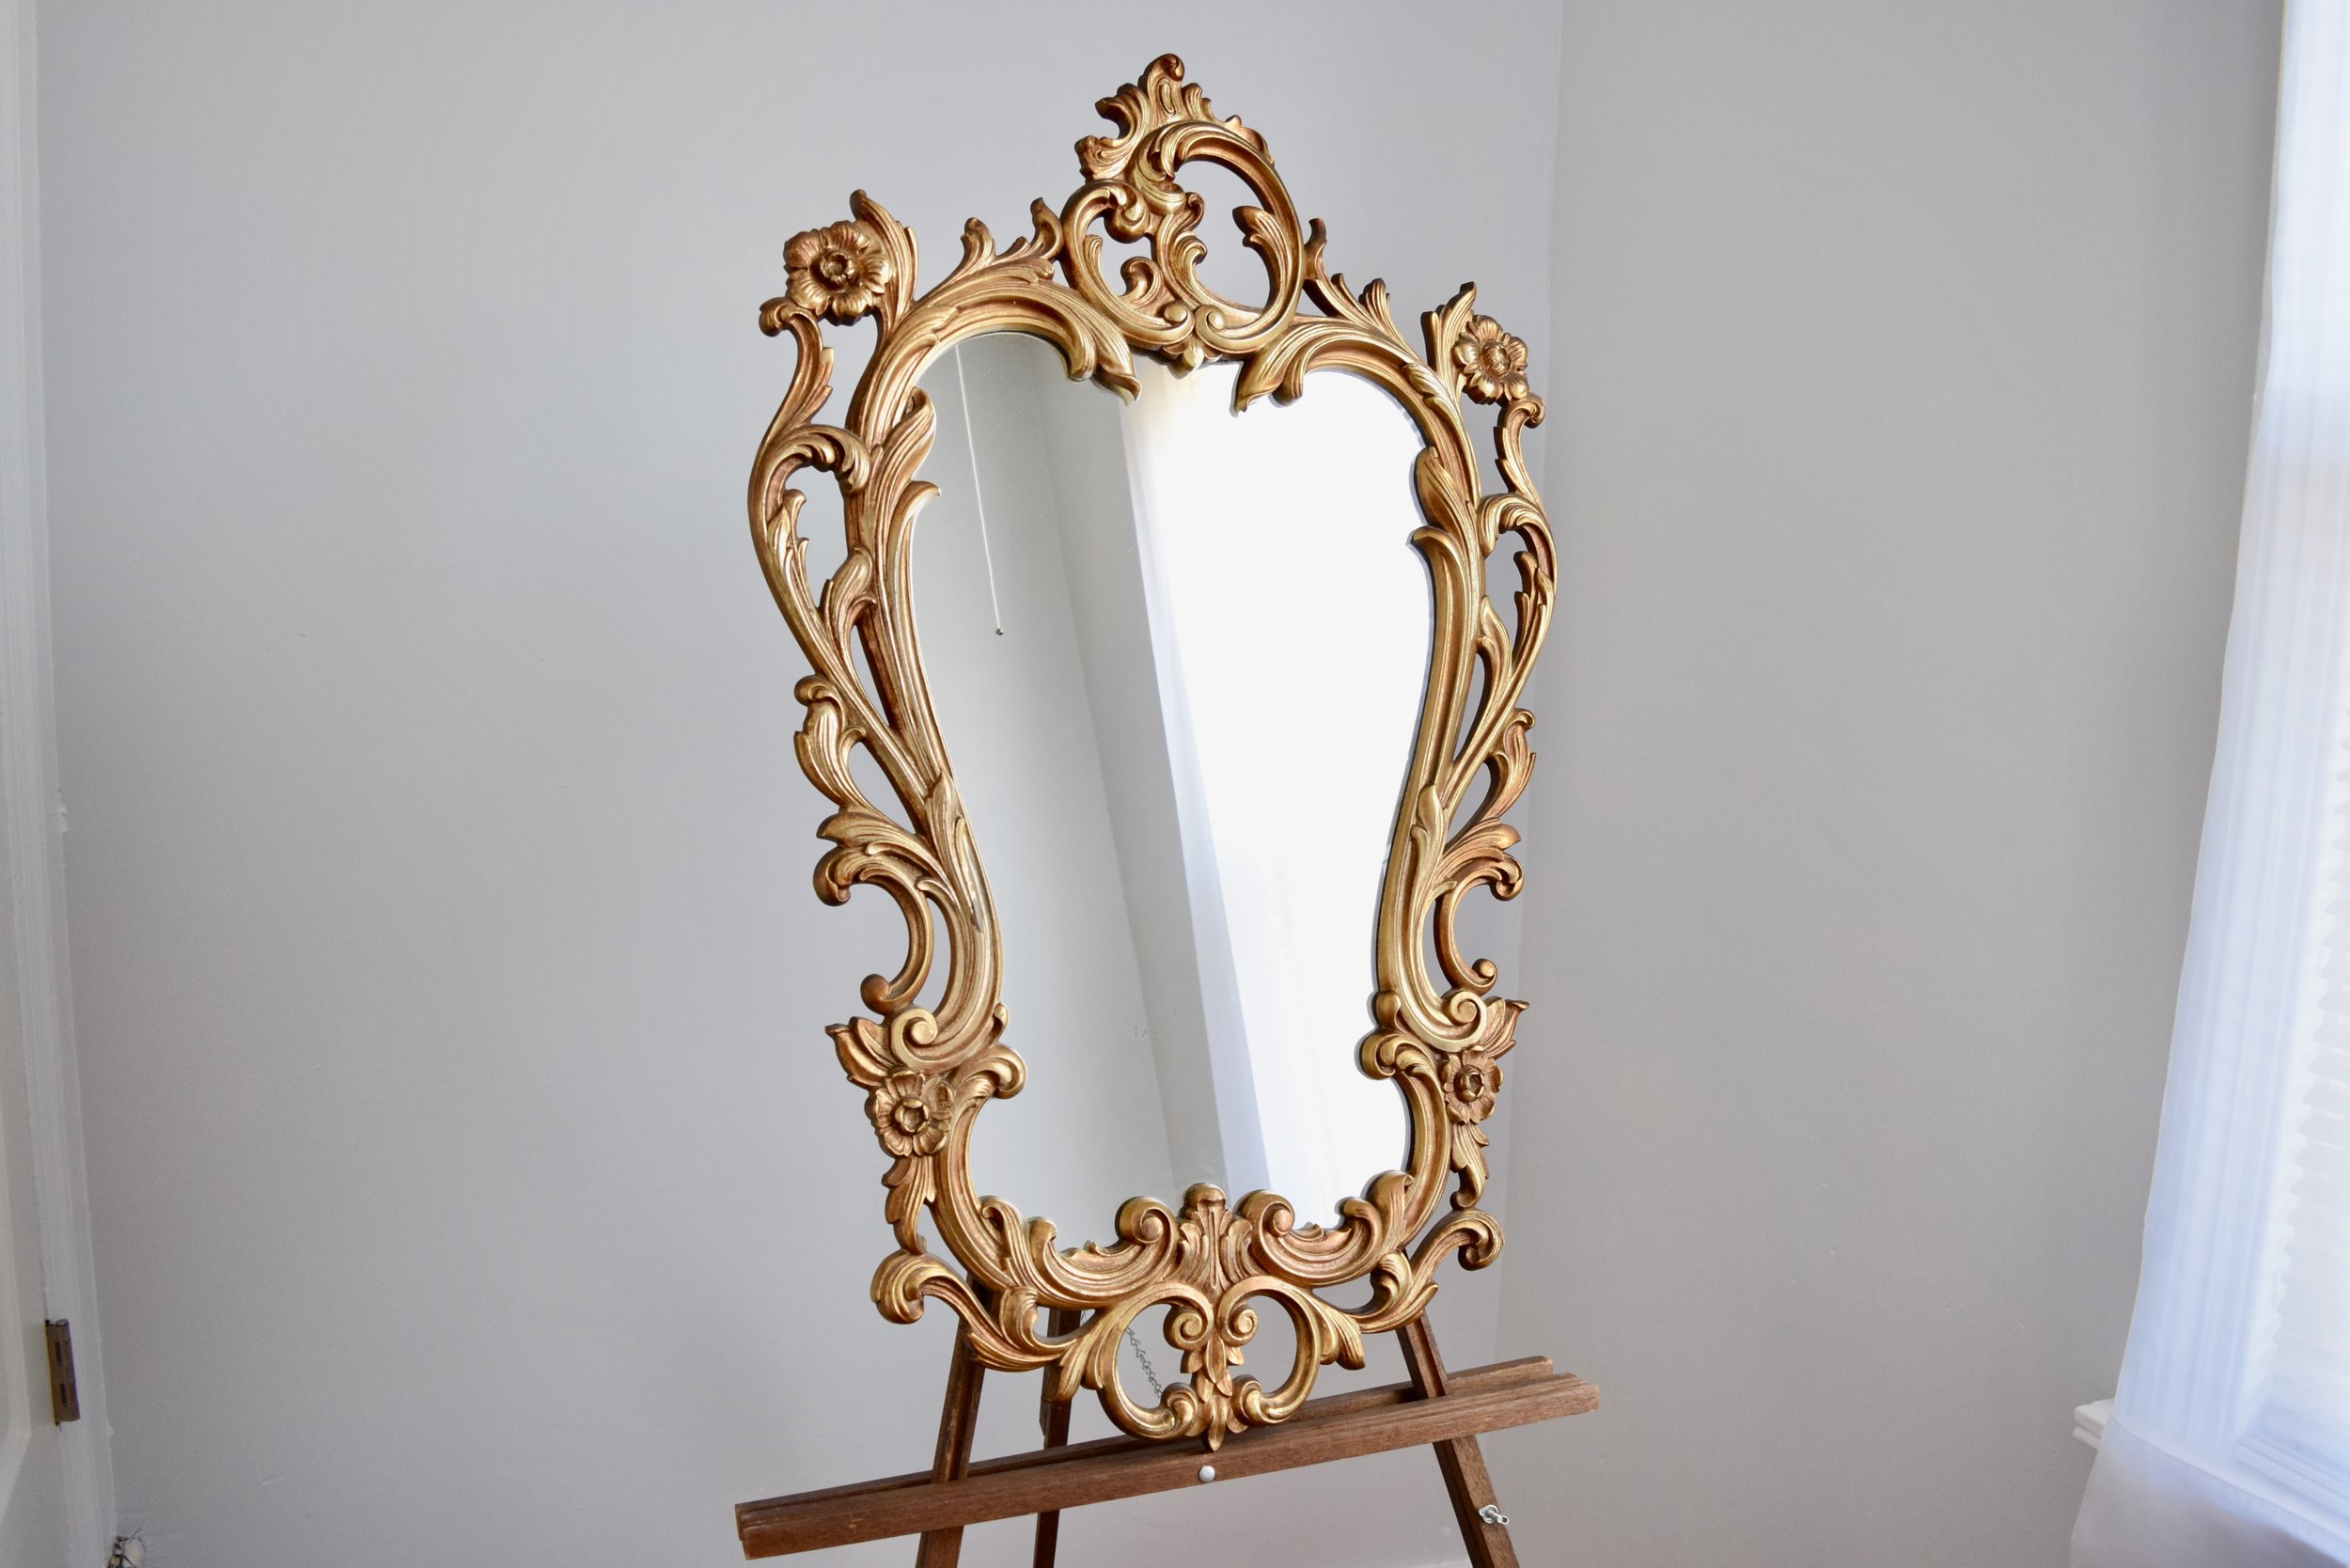 vintage oval mirror for wedding for rent.jpeg